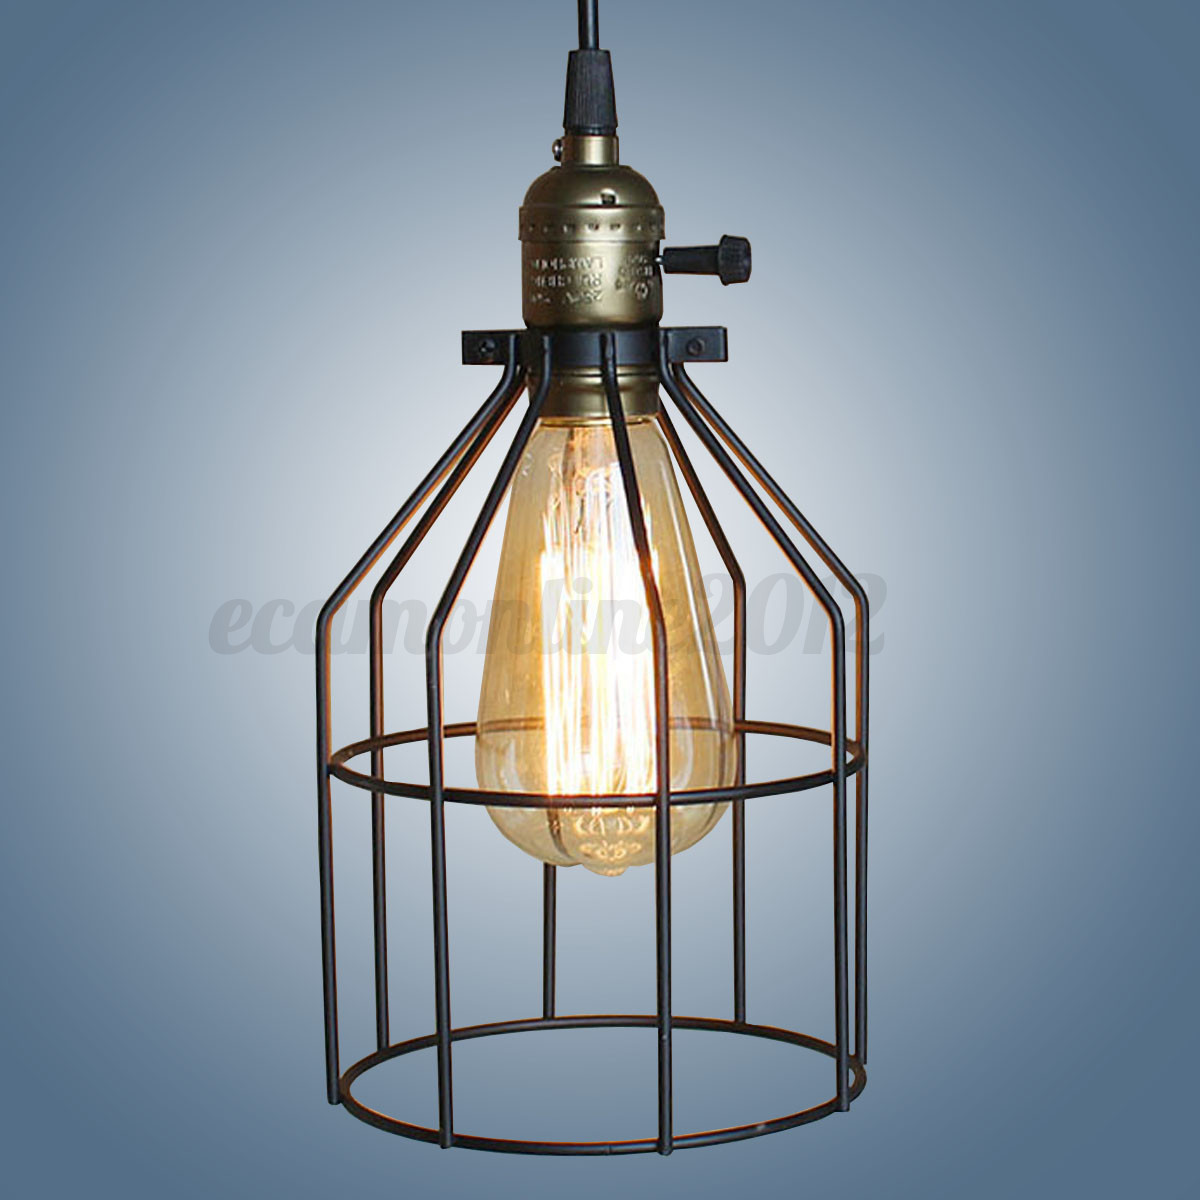 4 type retro metal cage abat jour treillis lampe ampoule industrie protection ebay. Black Bedroom Furniture Sets. Home Design Ideas